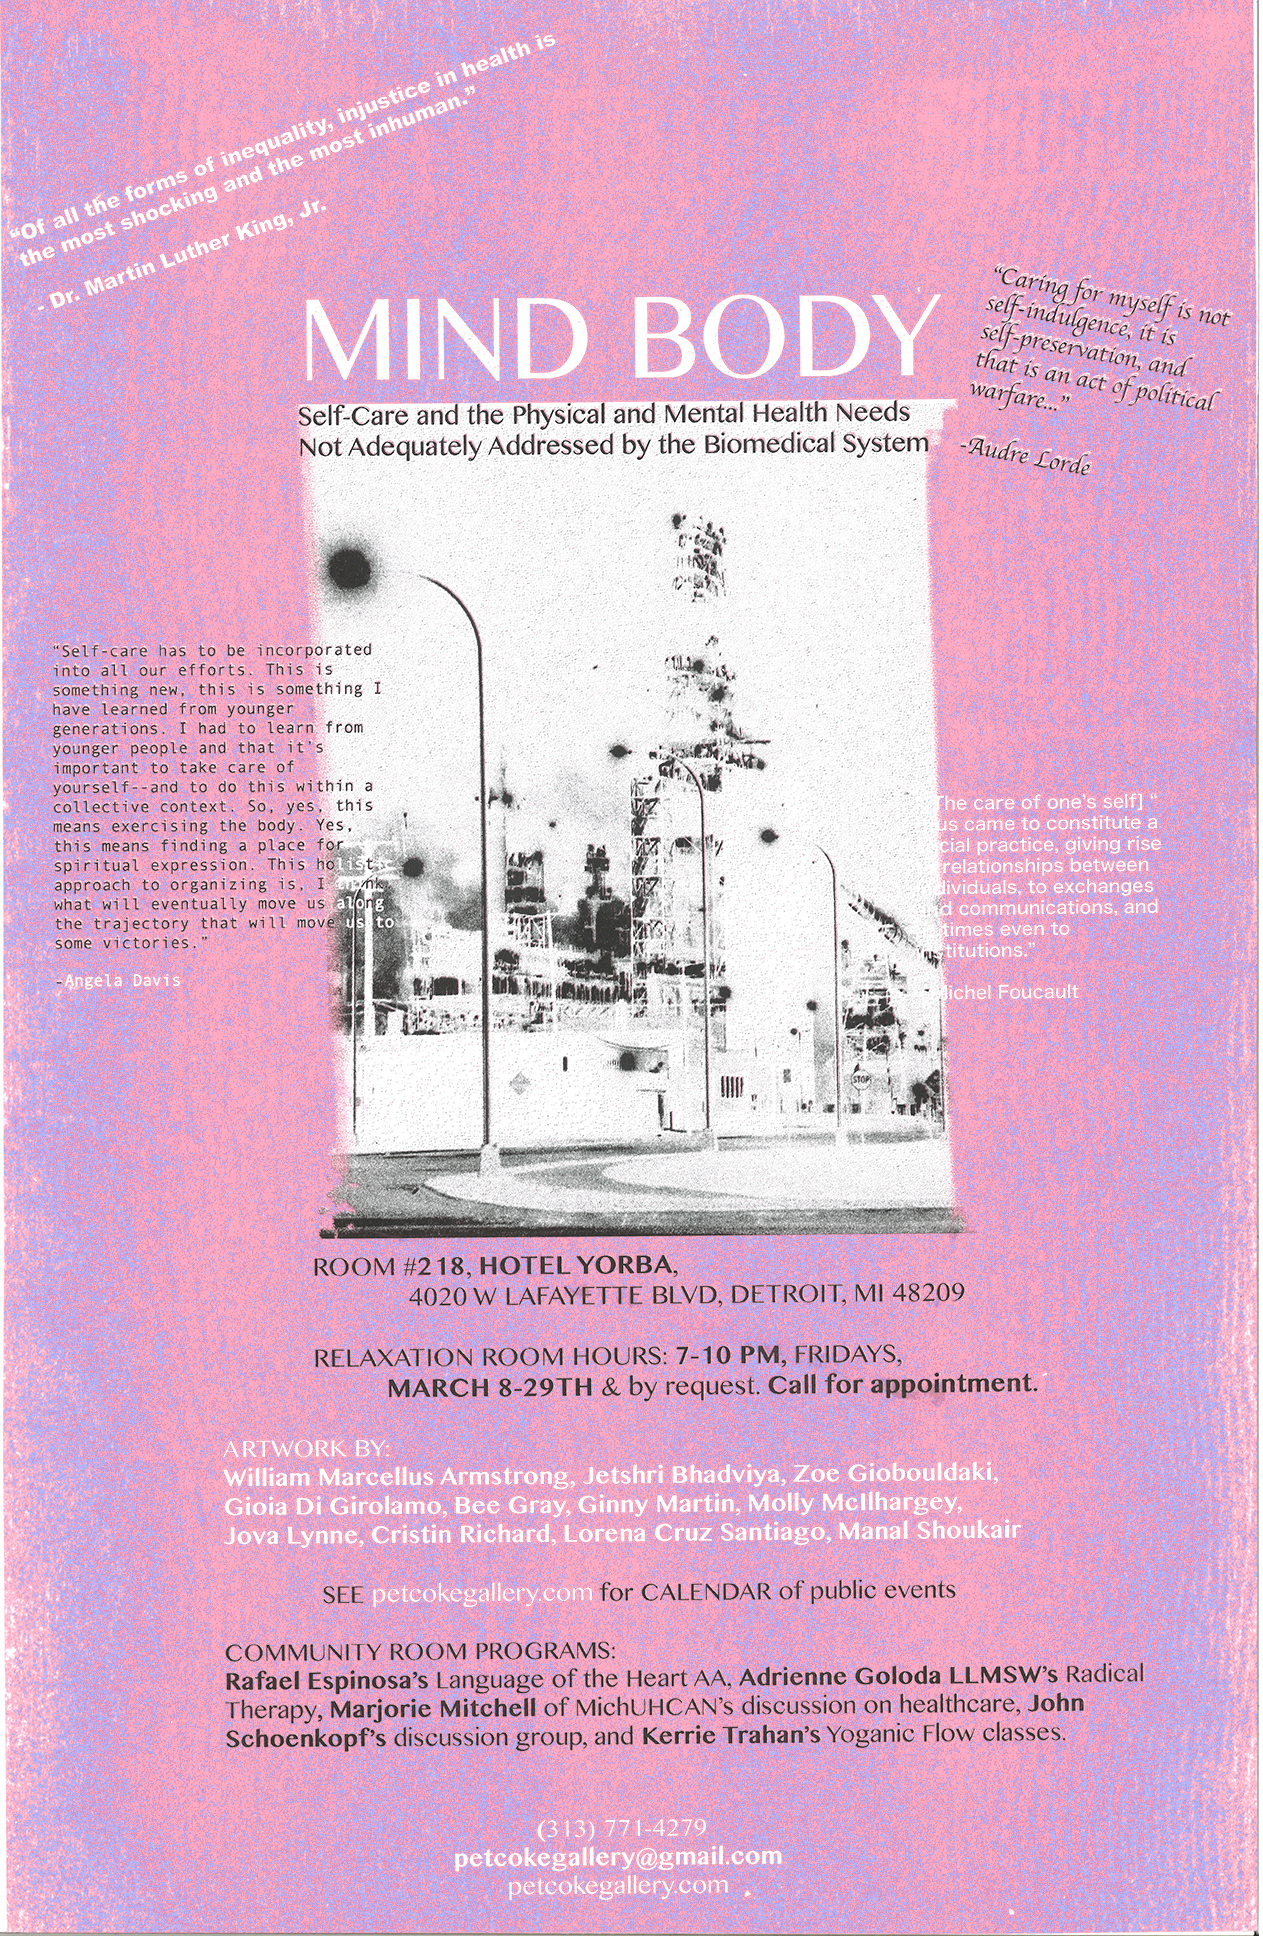 MIND_BODY_11x17_reduced_pastelpurplepink.jpg